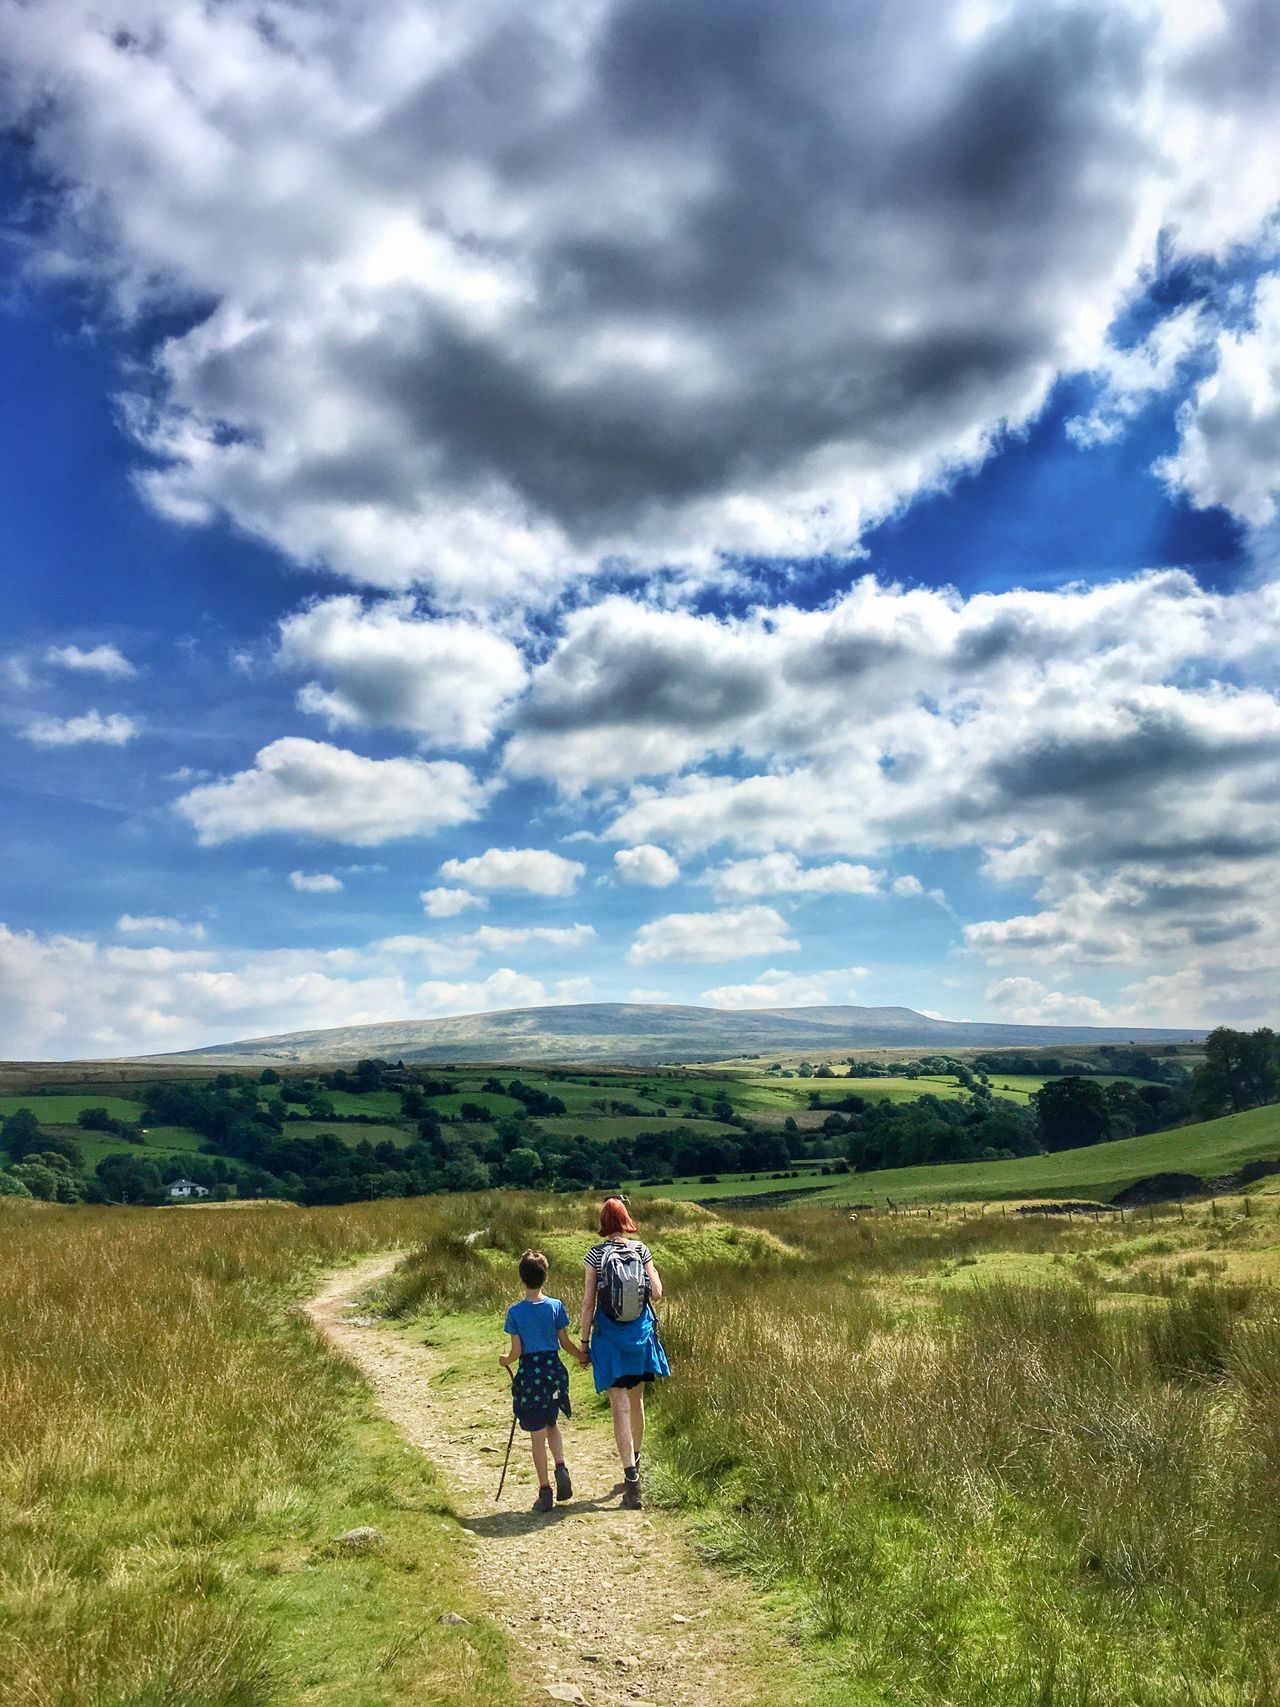 Howgill Fells Outdoors Mountain Outdoor Mountains Hill Hills Hiking Exploring Nature Family Mother Son Clouds And Sky Clouds Sky Summer